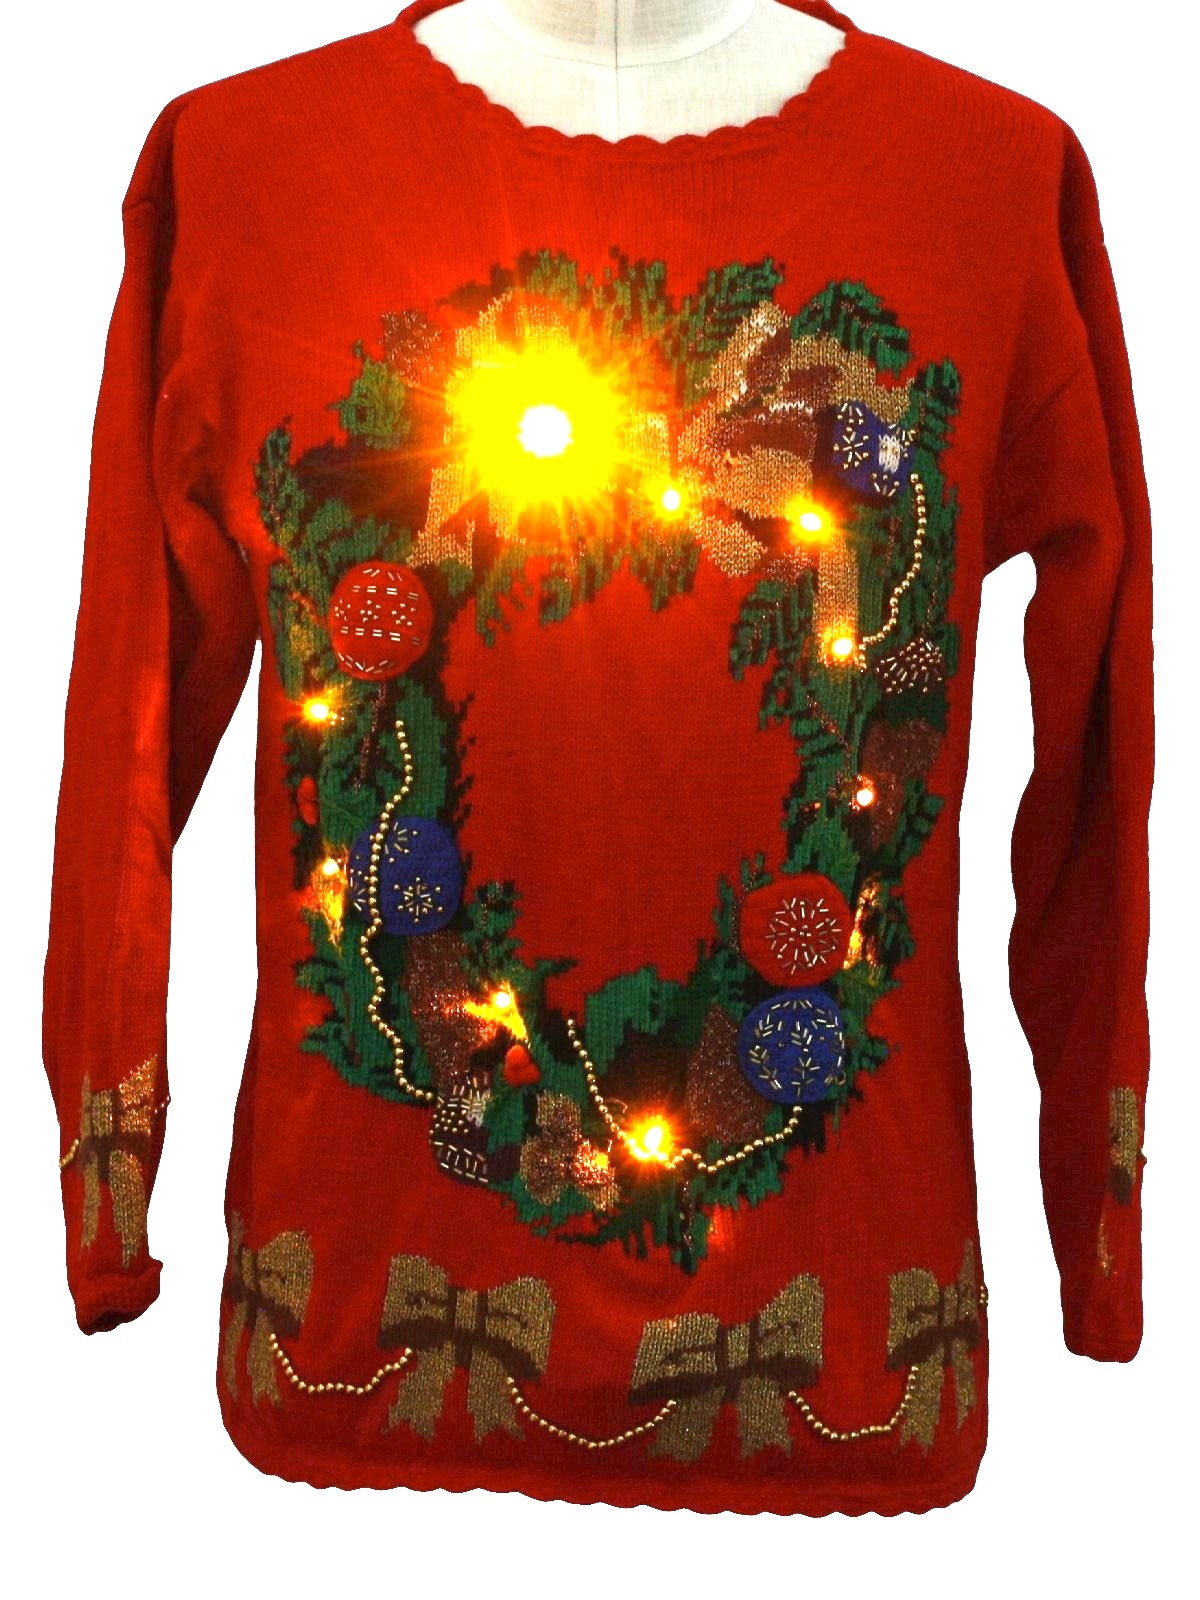 Lightup Ugly Christmas Sweater Retro Look Eagles Eye Unisex Red